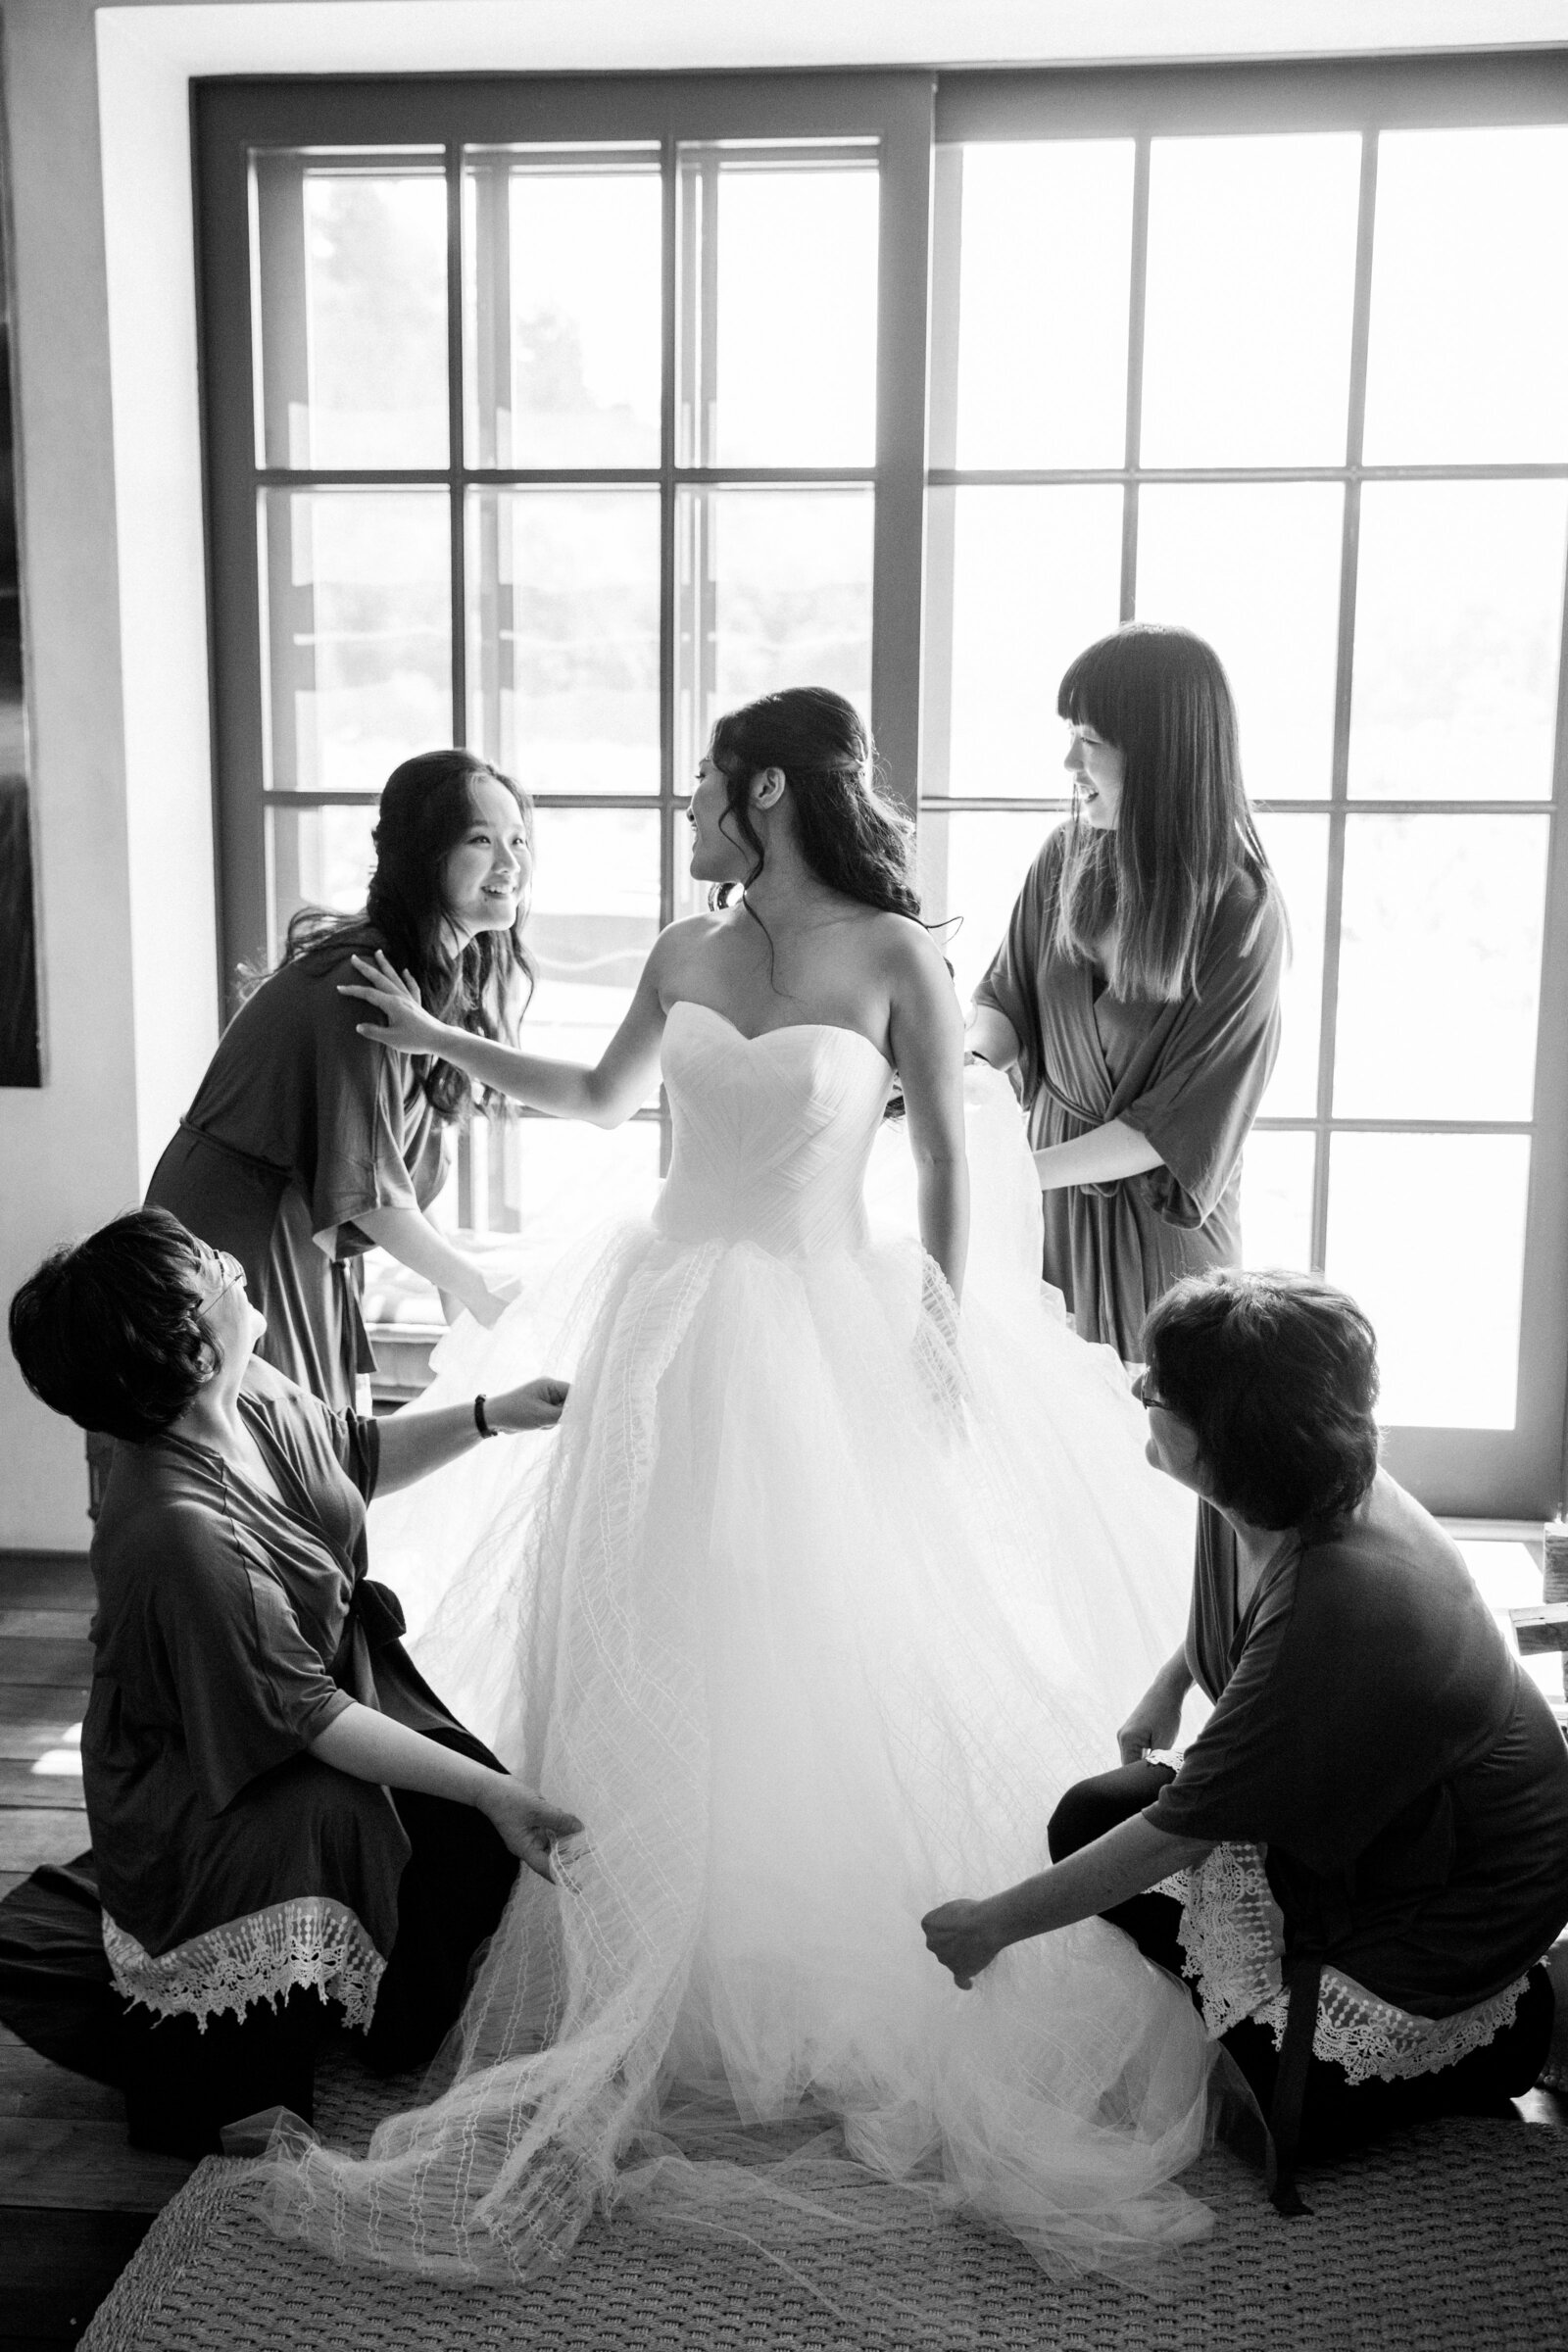 005_LCphoto-ms-wedding-0115